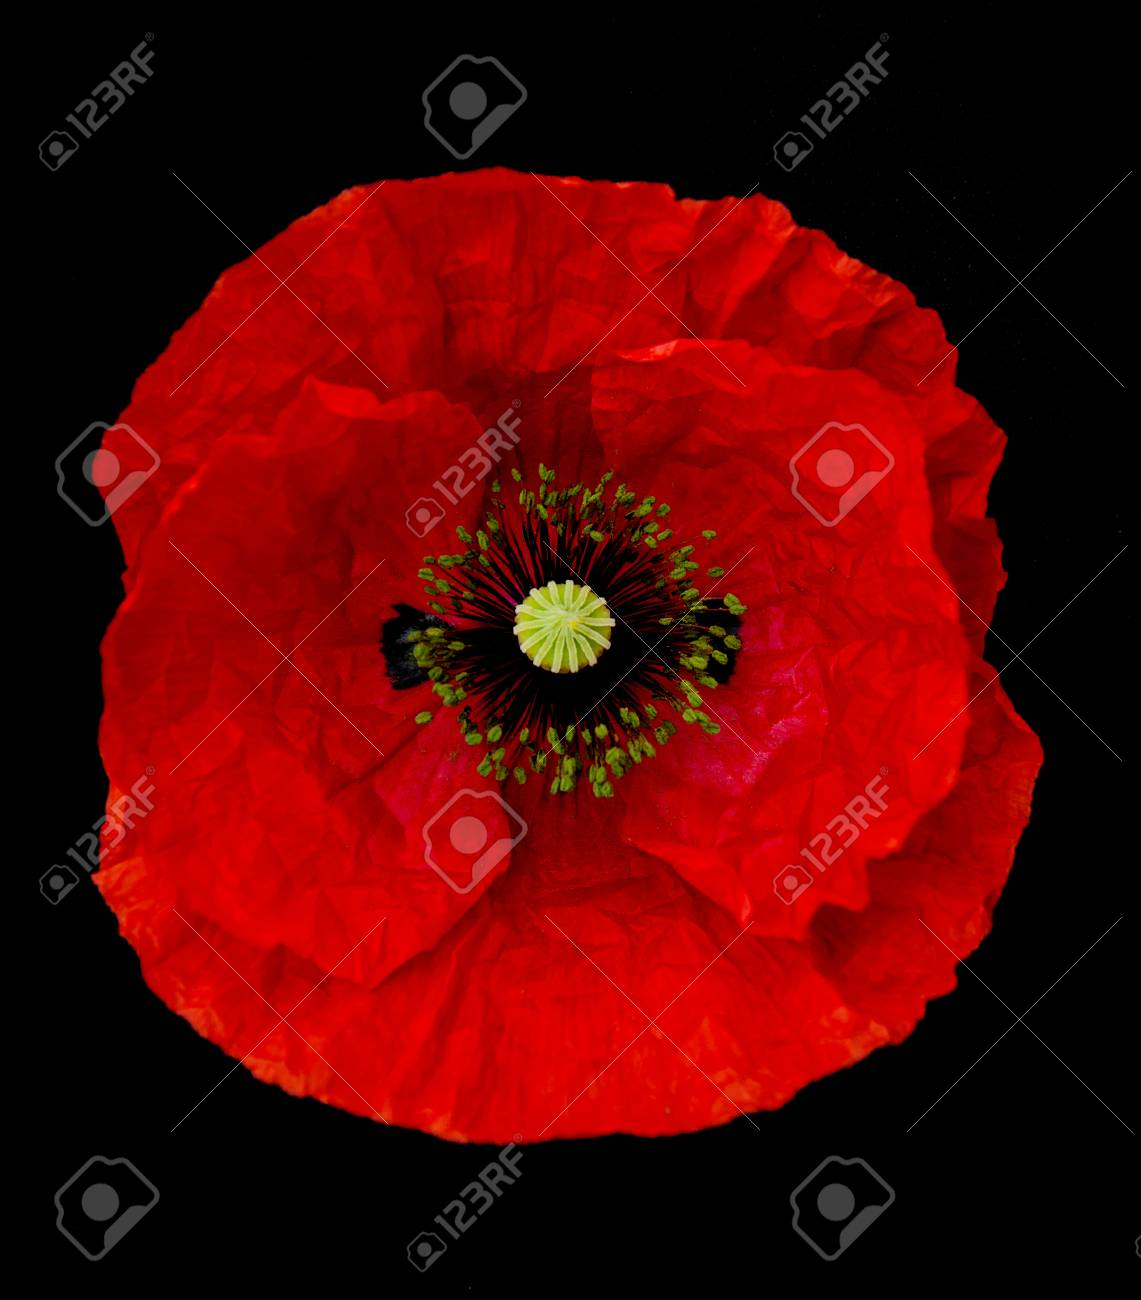 Red Poppy Flower Isolated On A Black Background Stock Photo Picture